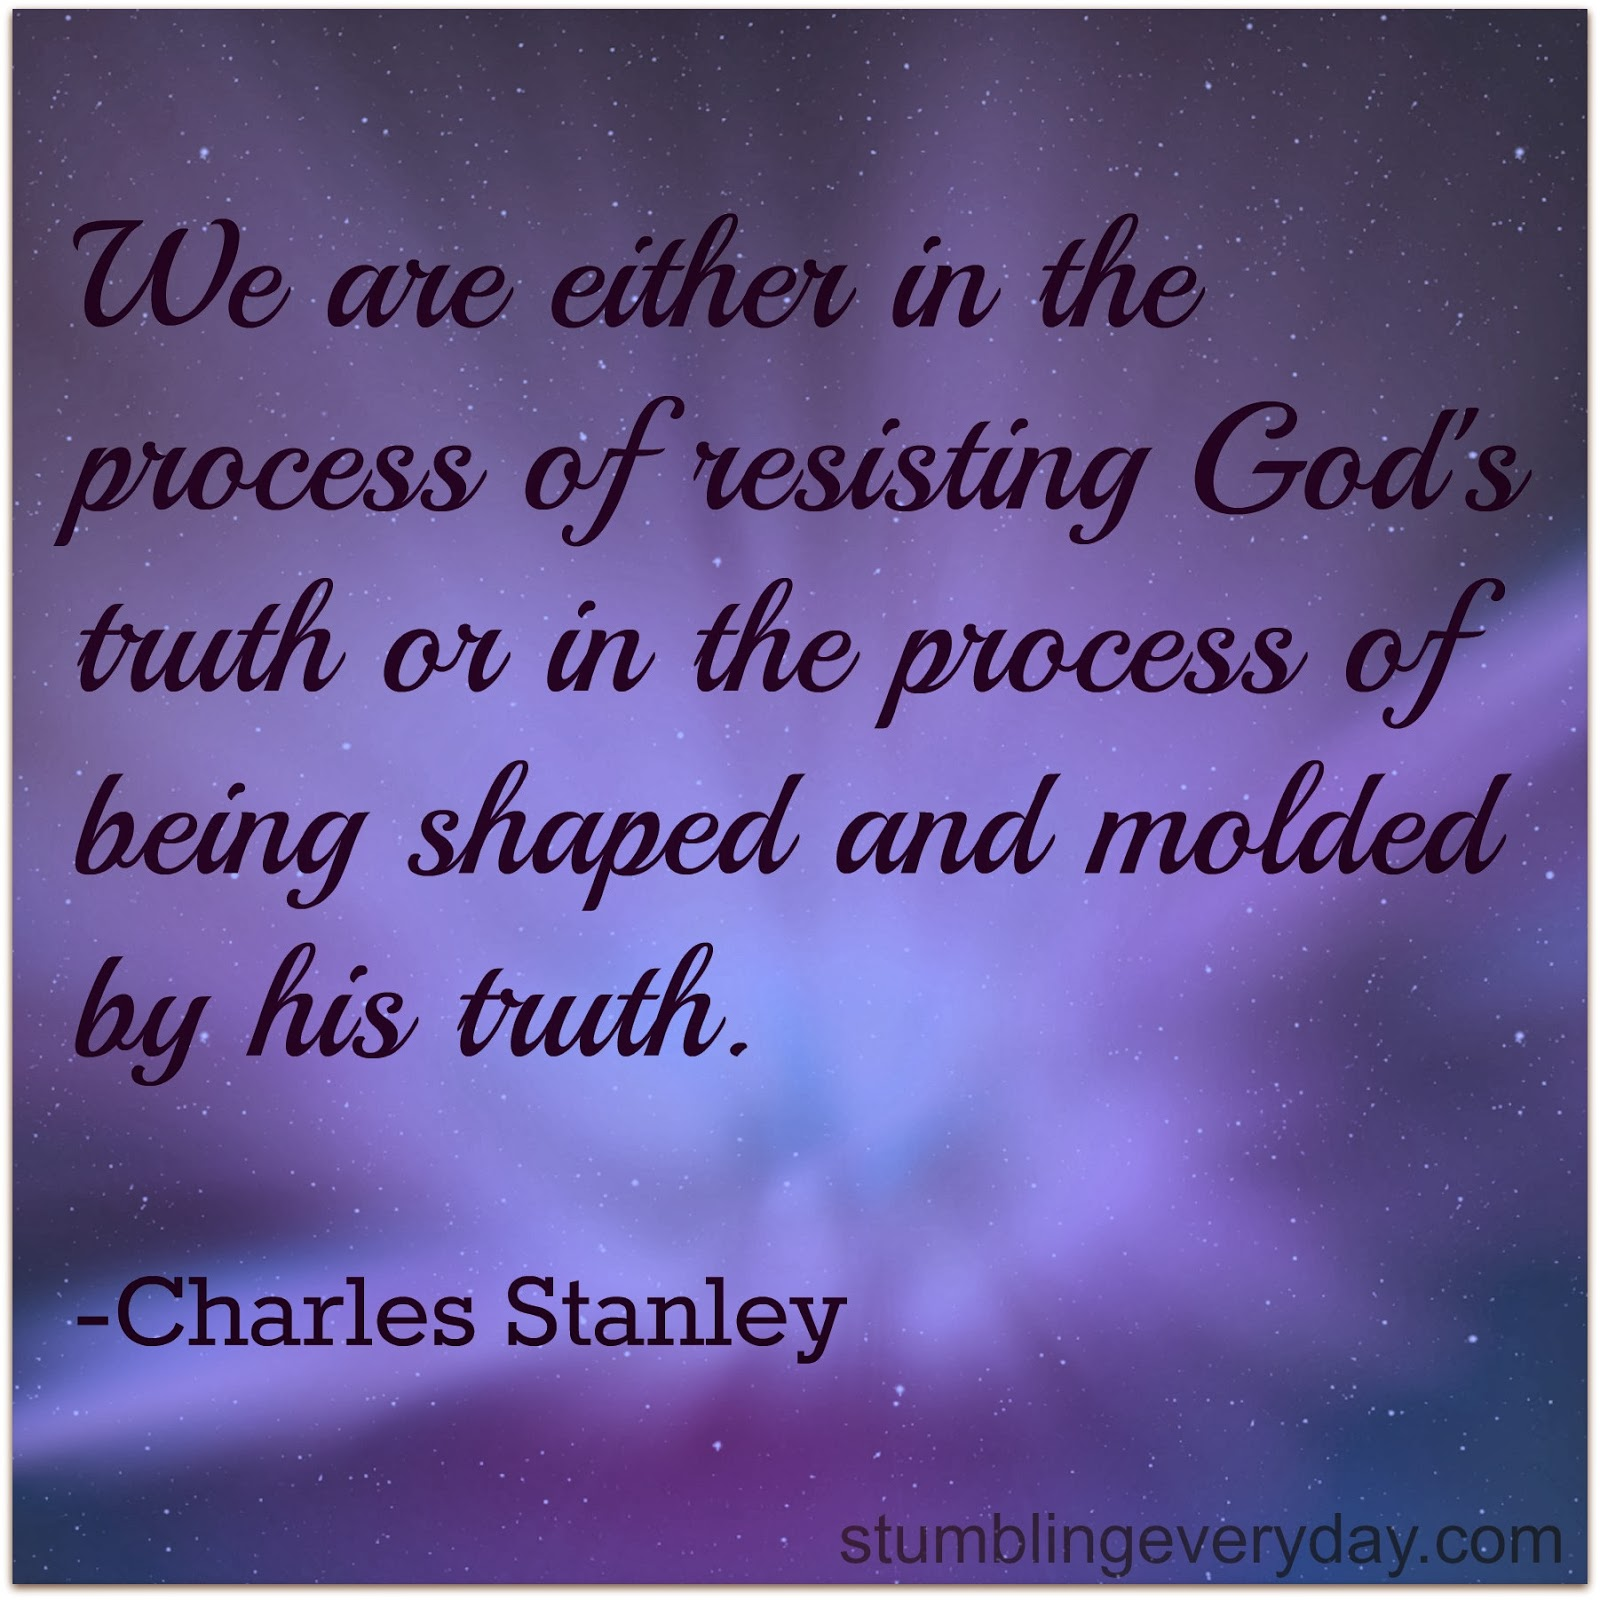 We are either in the process of resisting God's truth or in the process of being shaped and molded by his truth. Charles Stanley